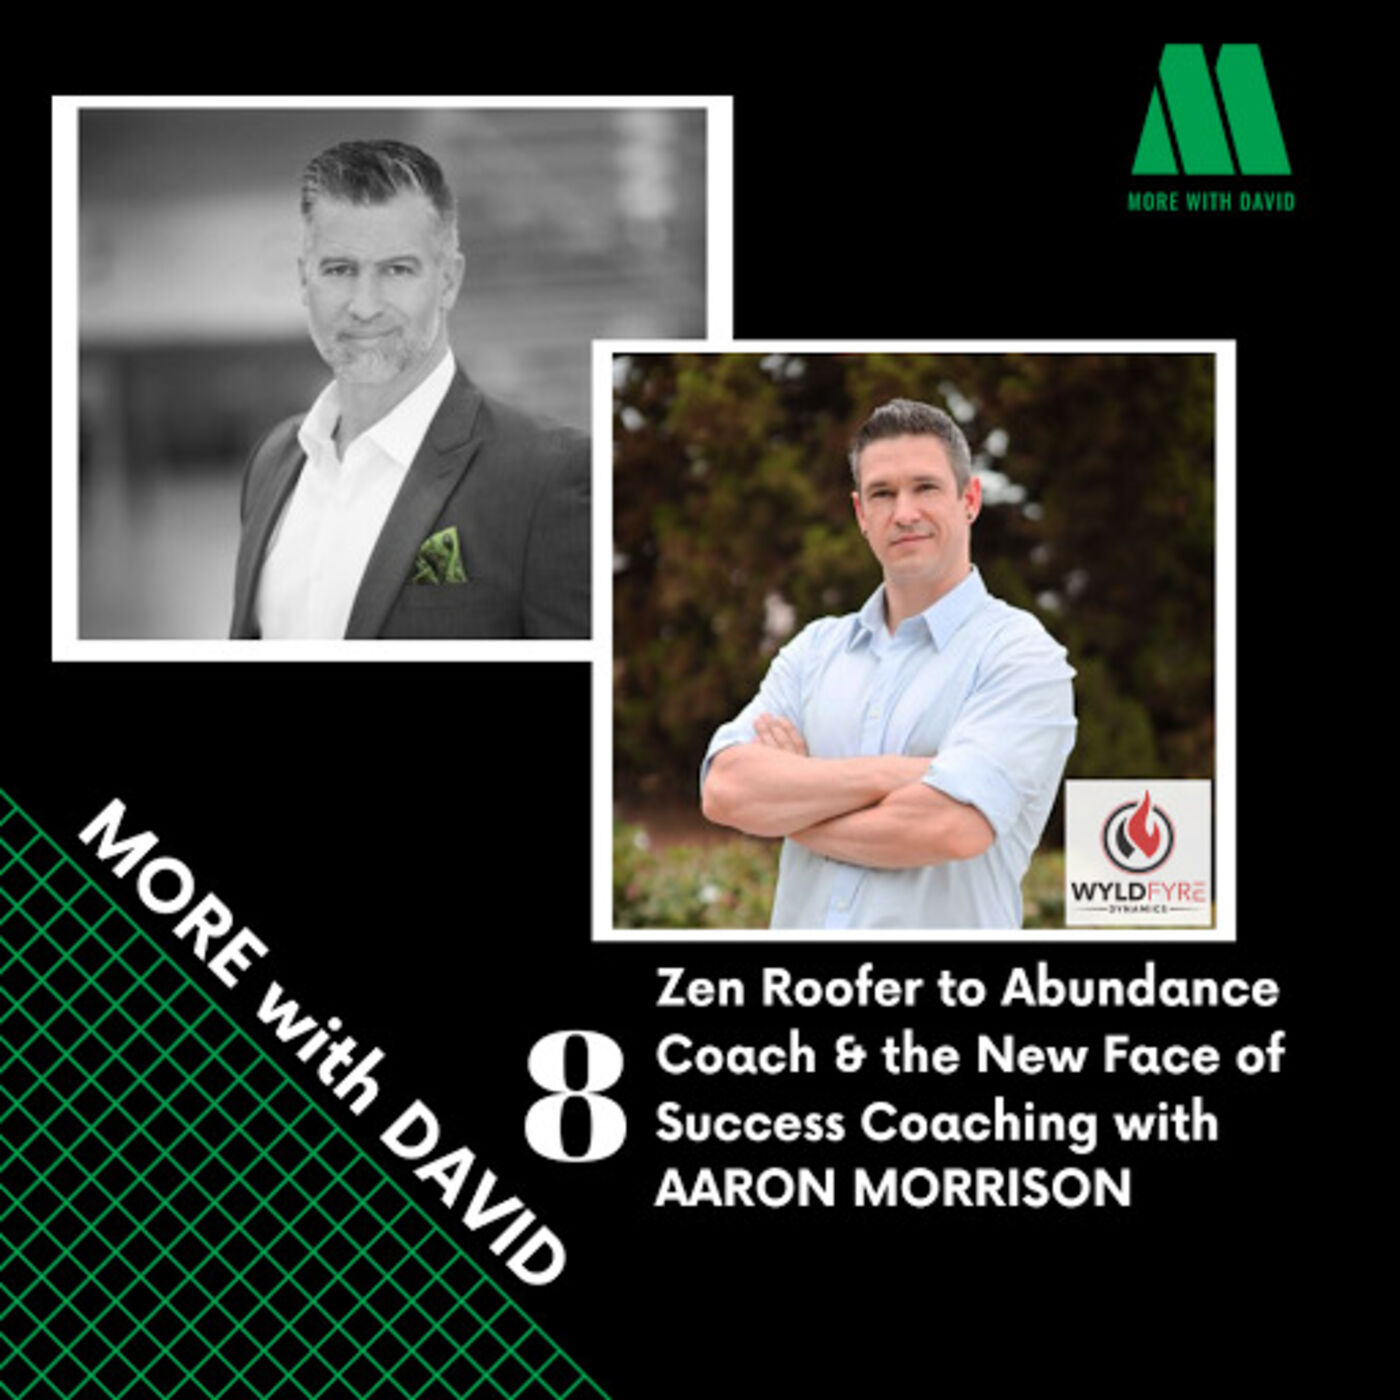 Zen Roofer to Abundance Coach & the New Face of Success Coaching